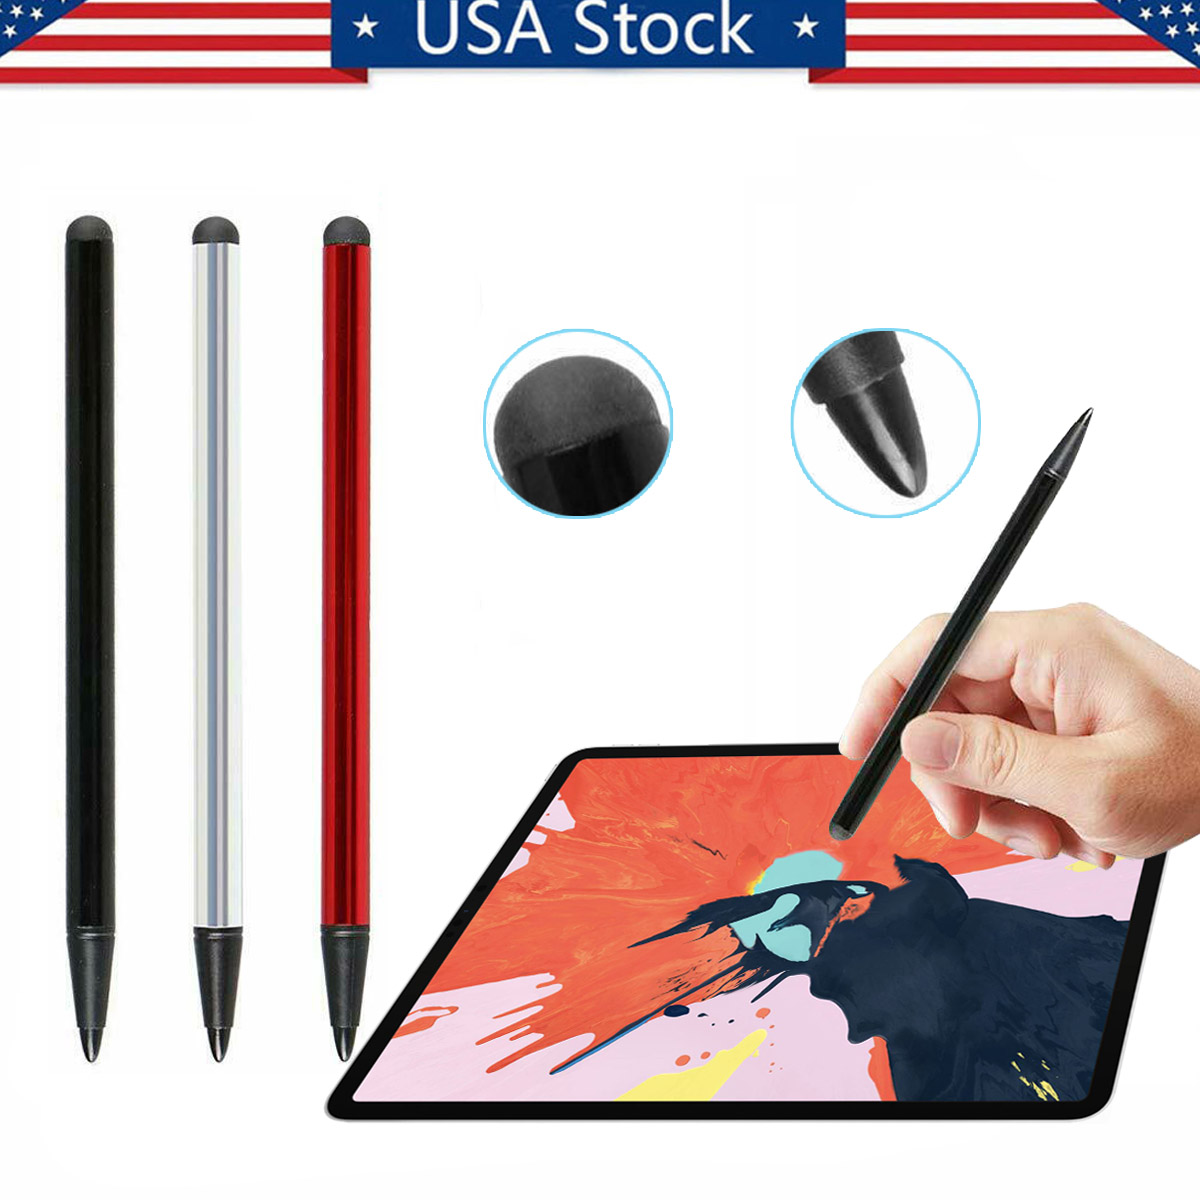 2pcs Universal Capacitive Pen Touch Screen Stylus Pens for Tablet for Pad